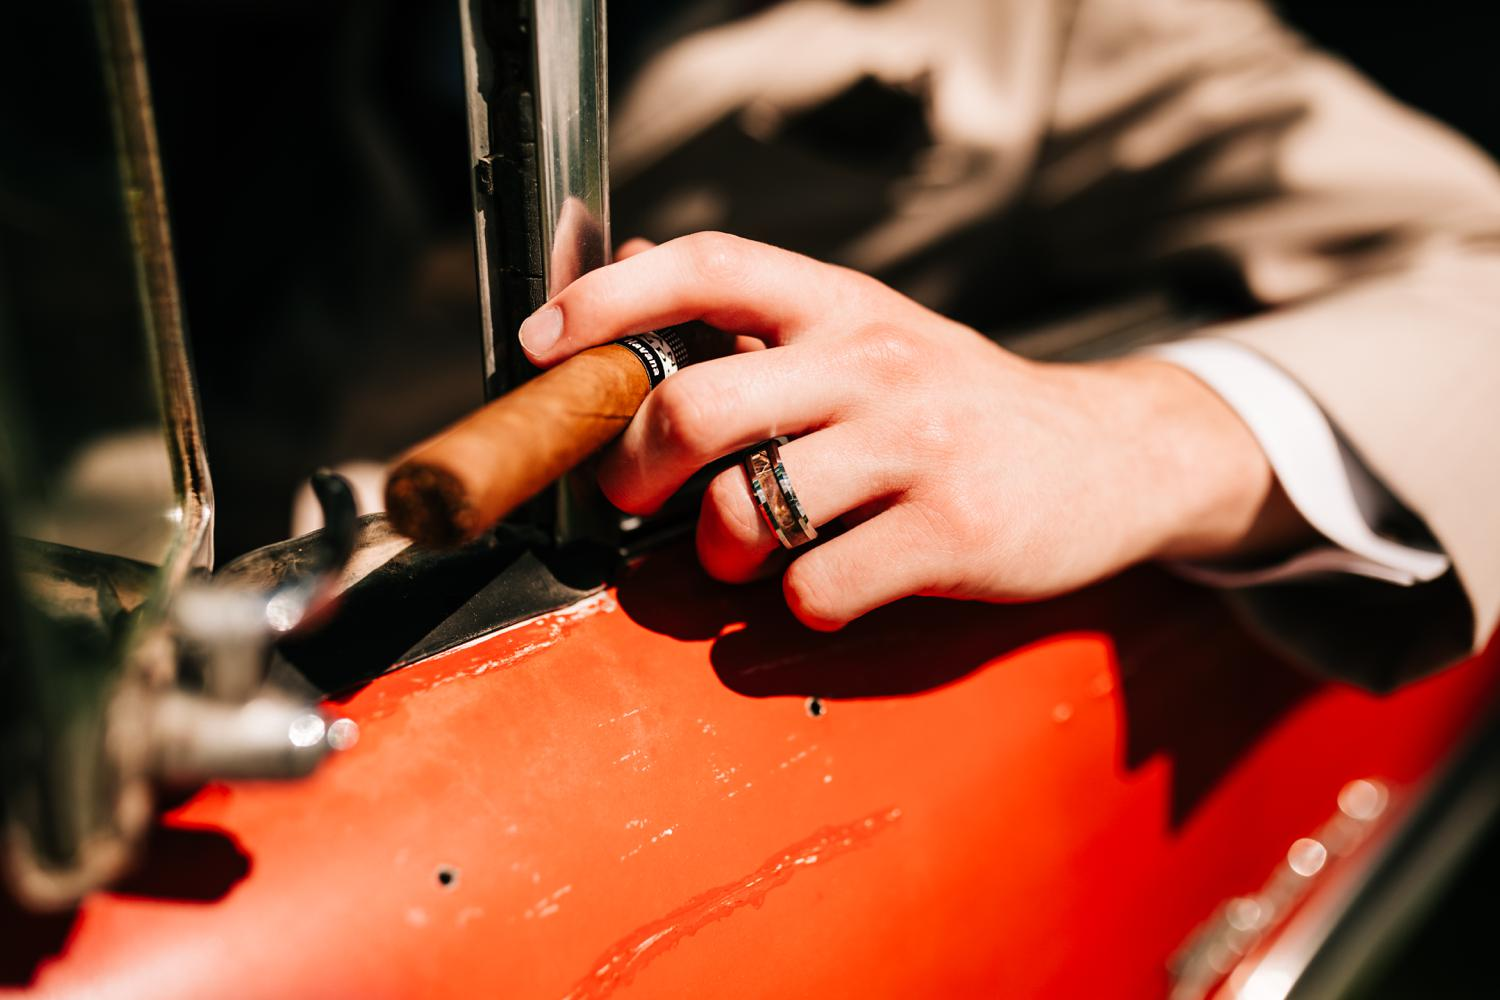 Groom with wedding ring and cuban cigar